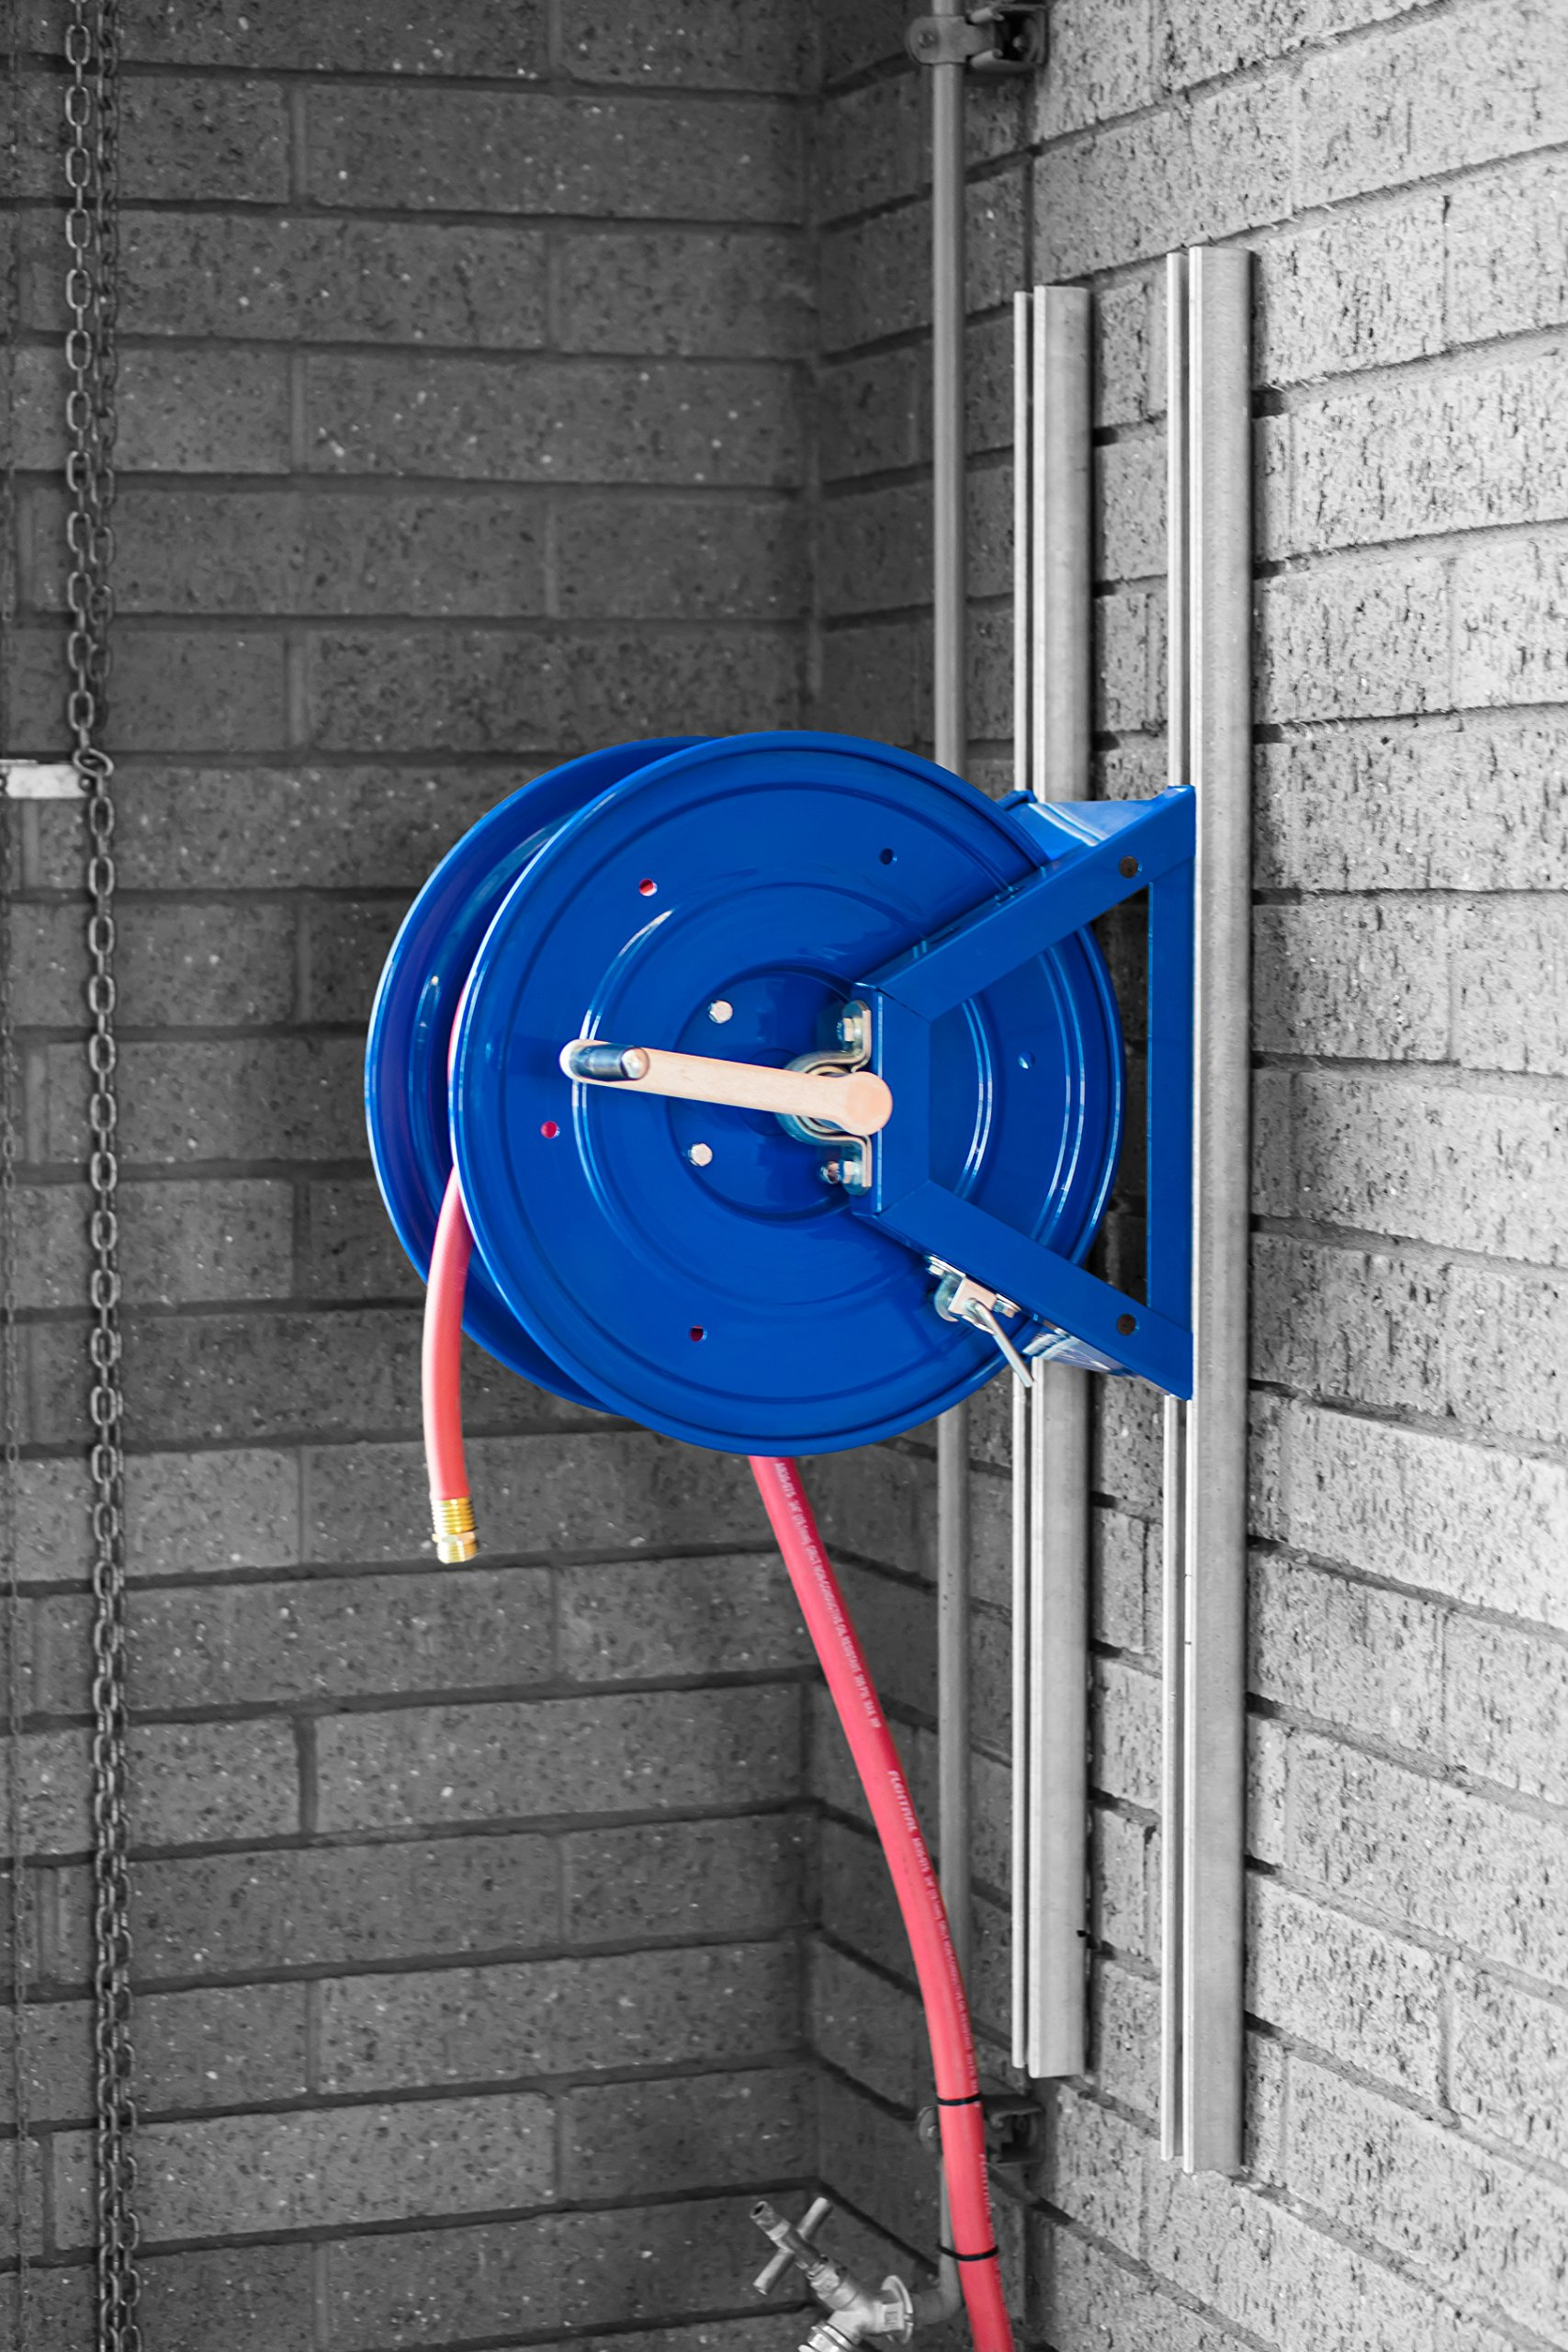 Coxreels 1125-4-100 Steel Hand Crank Hose Reel, 1/2'' Hose I.D., 100' Hose Capacity, 3,000 PSI, without Hose, Made in USA by Coxreels (Image #13)